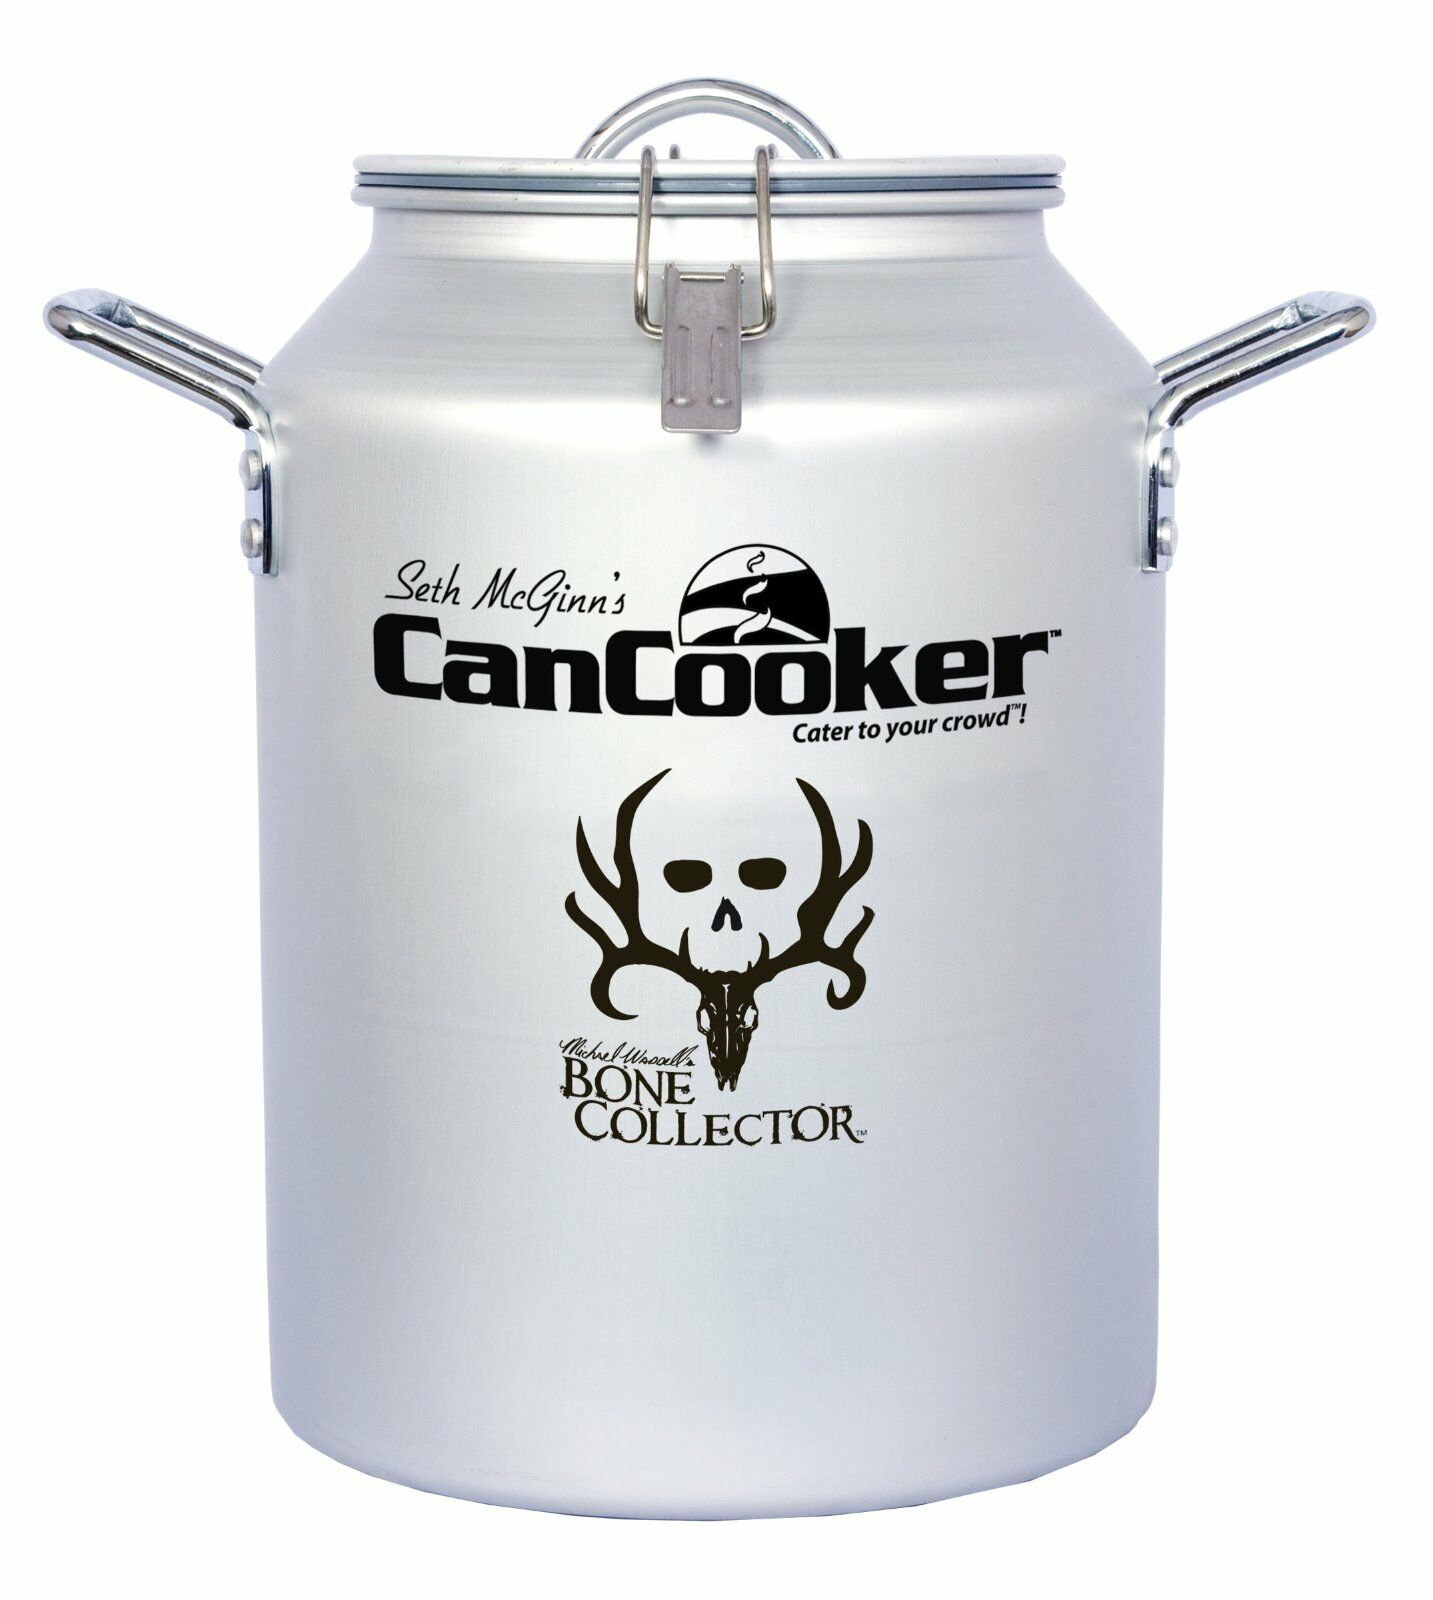 CanCooker - The   Bone Collector  CanCooker - 4 Gallon -  online shopping and fashion store